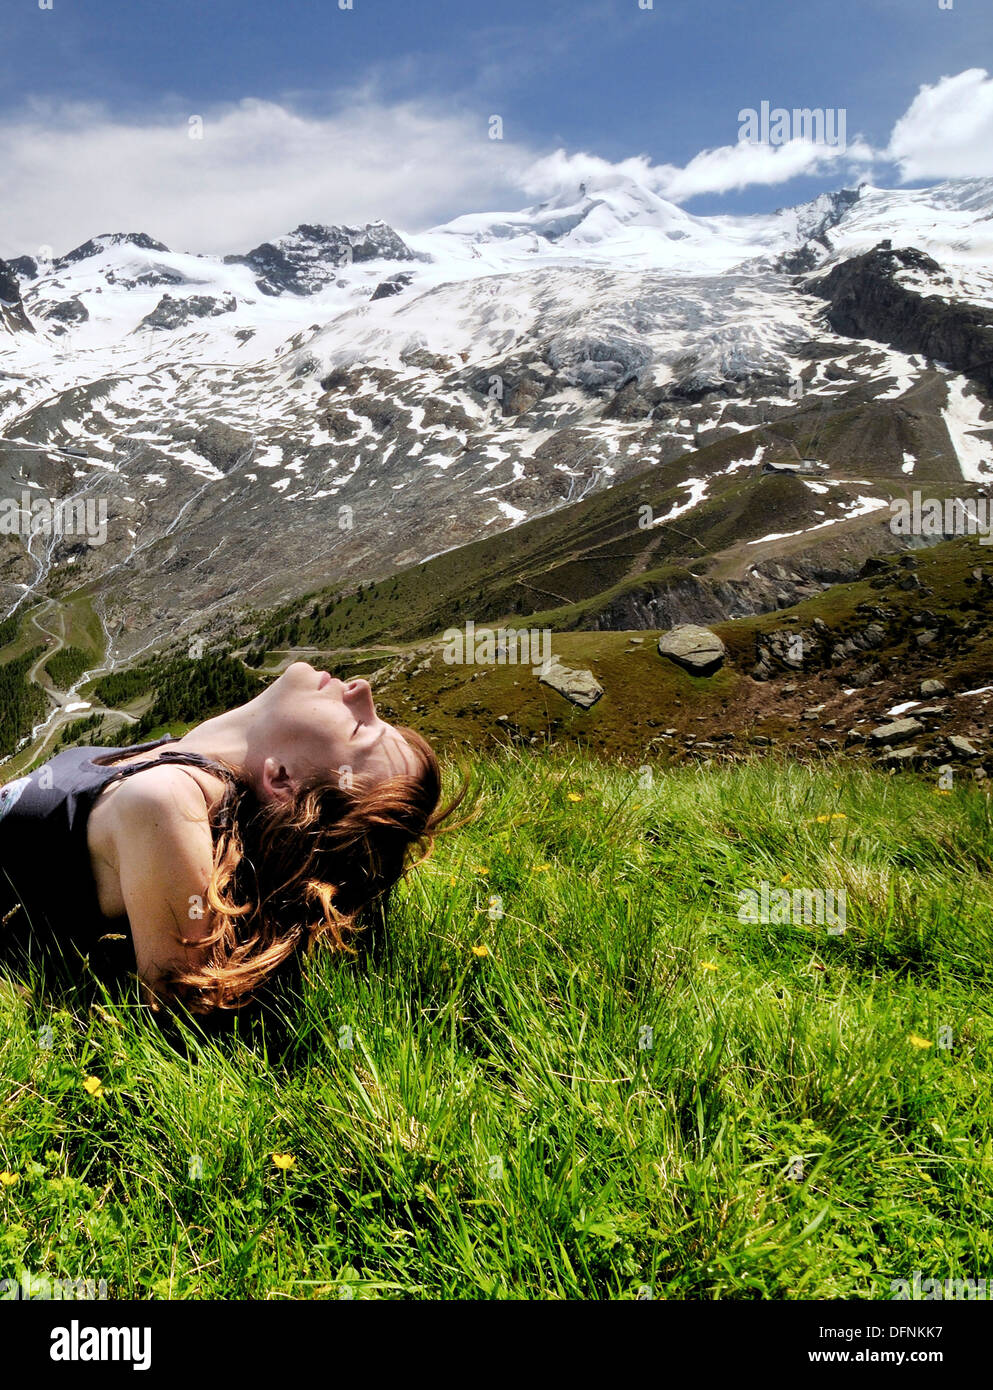 face of young woman in the sun, sun bath, recreation, health, Swiss Alps, Switzerland - Stock Image